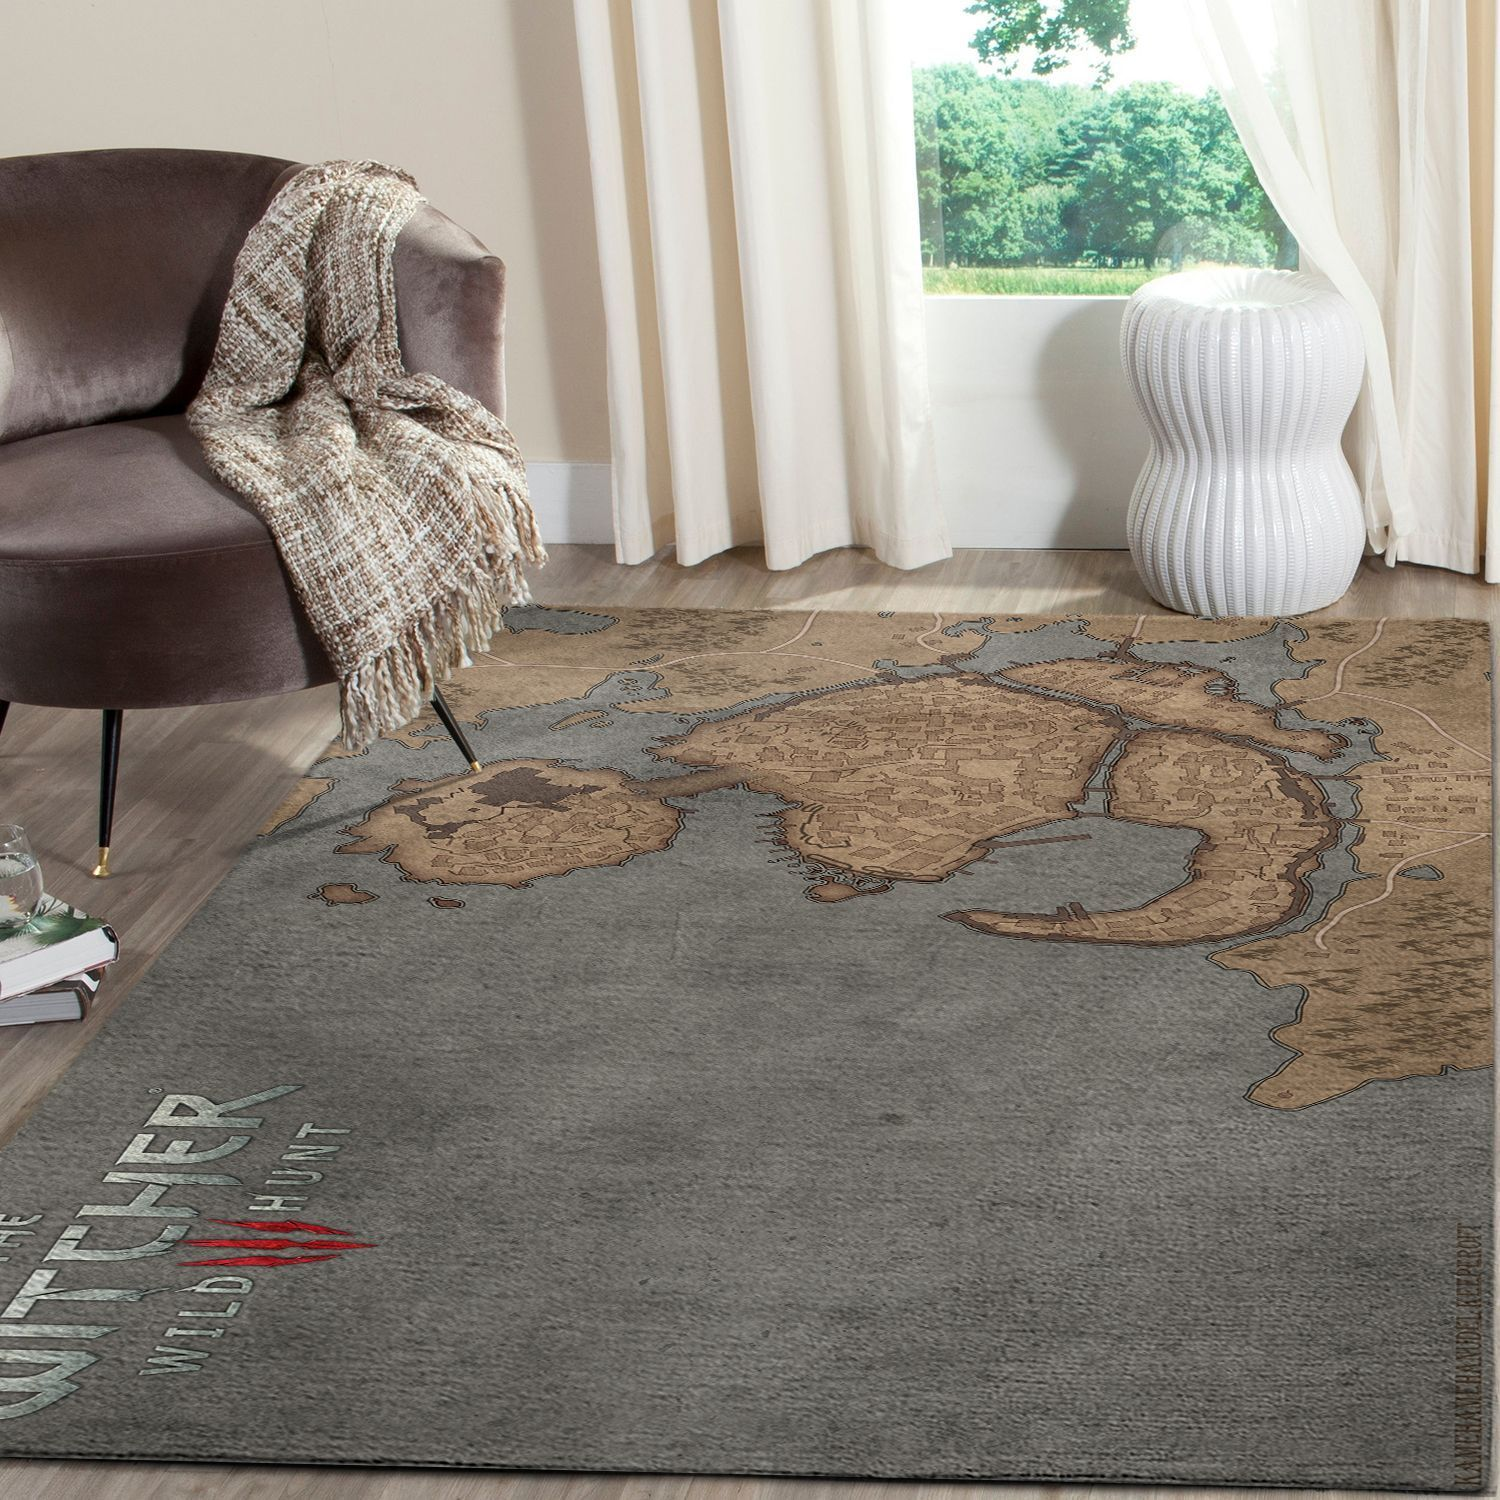 The Witcher Map Gaming Area Rugs Living Room Carpet Fn120135 Local